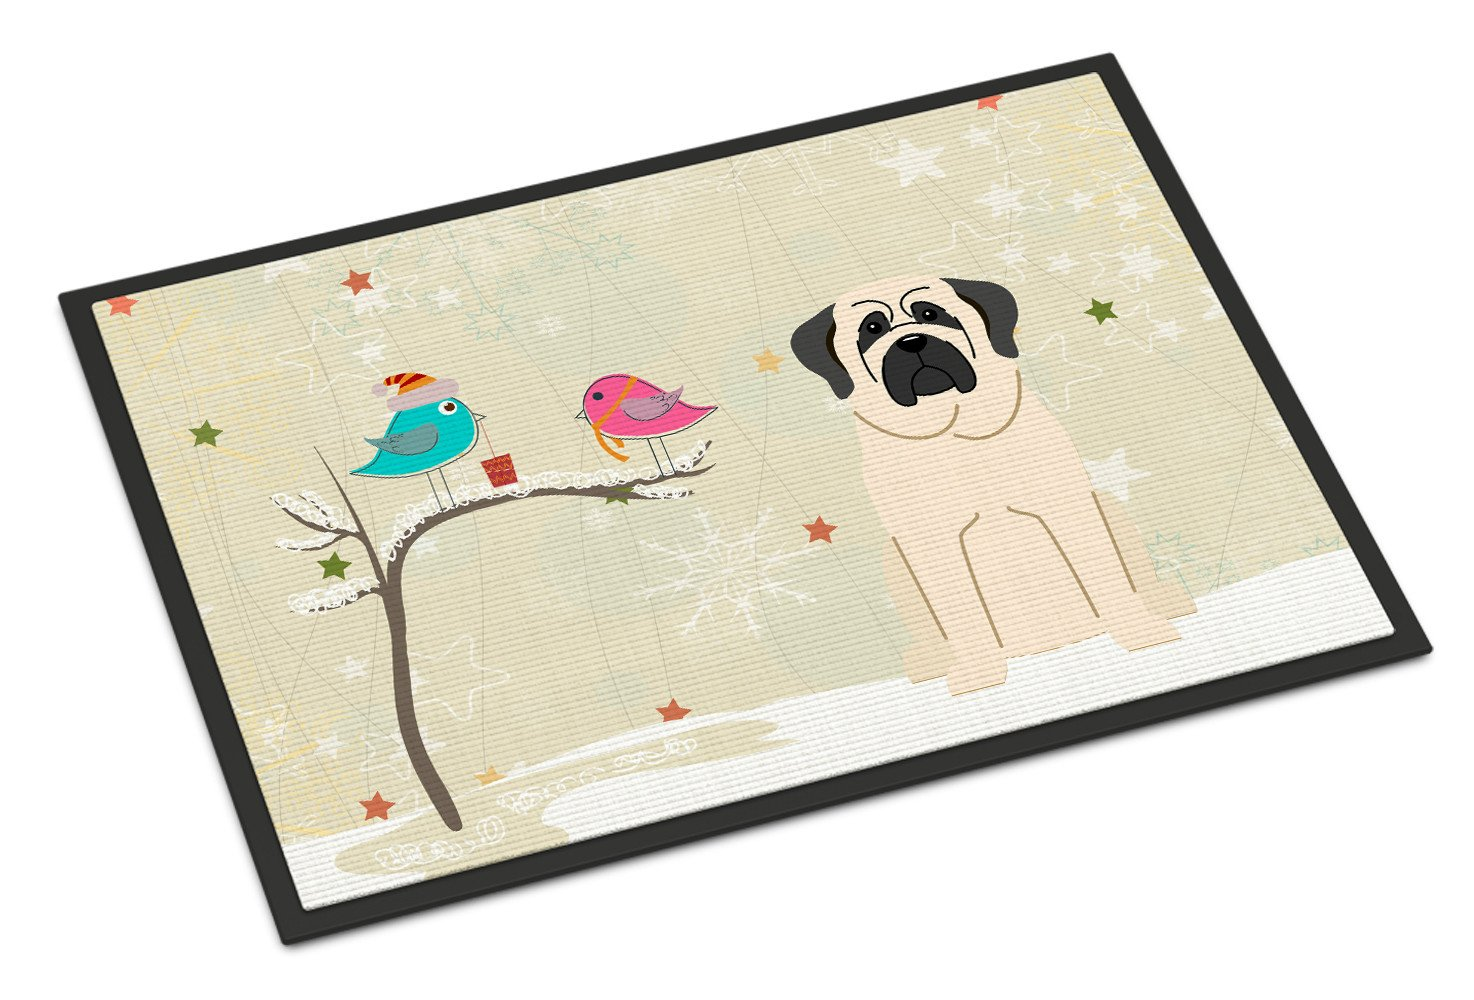 Christmas Presents between Friends Mastiff White Indoor or Outdoor Mat 18x27 BB2489MAT - the-store.com